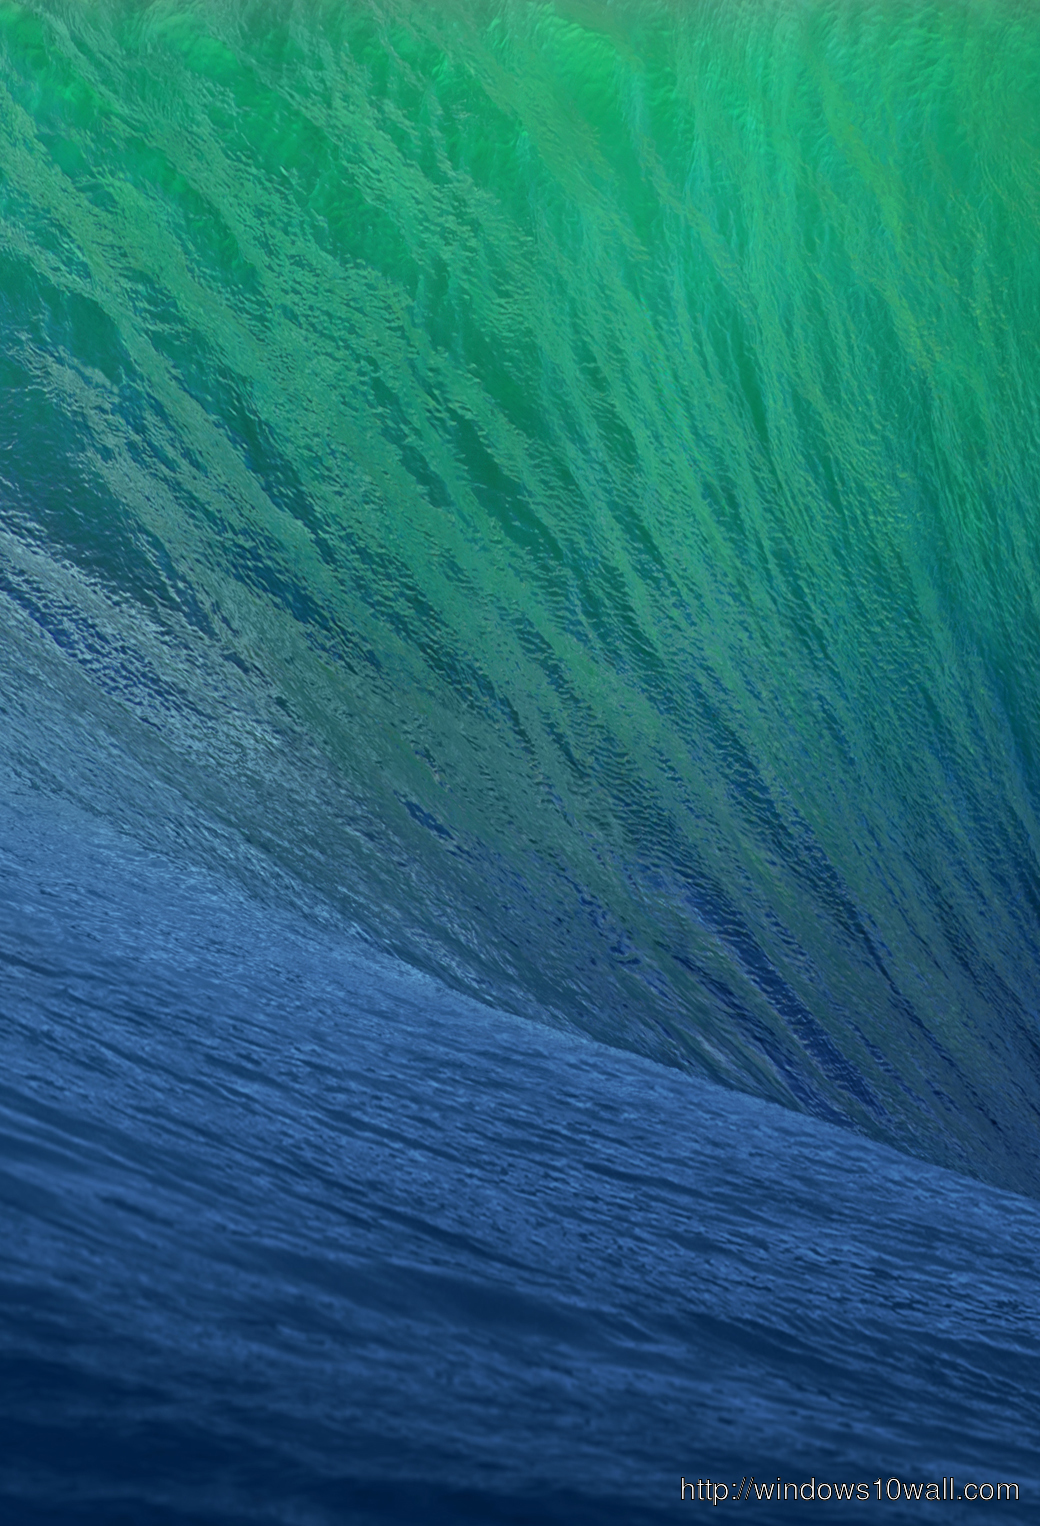 Sea Waves Blue Green iphone 5 Background Wallpaper